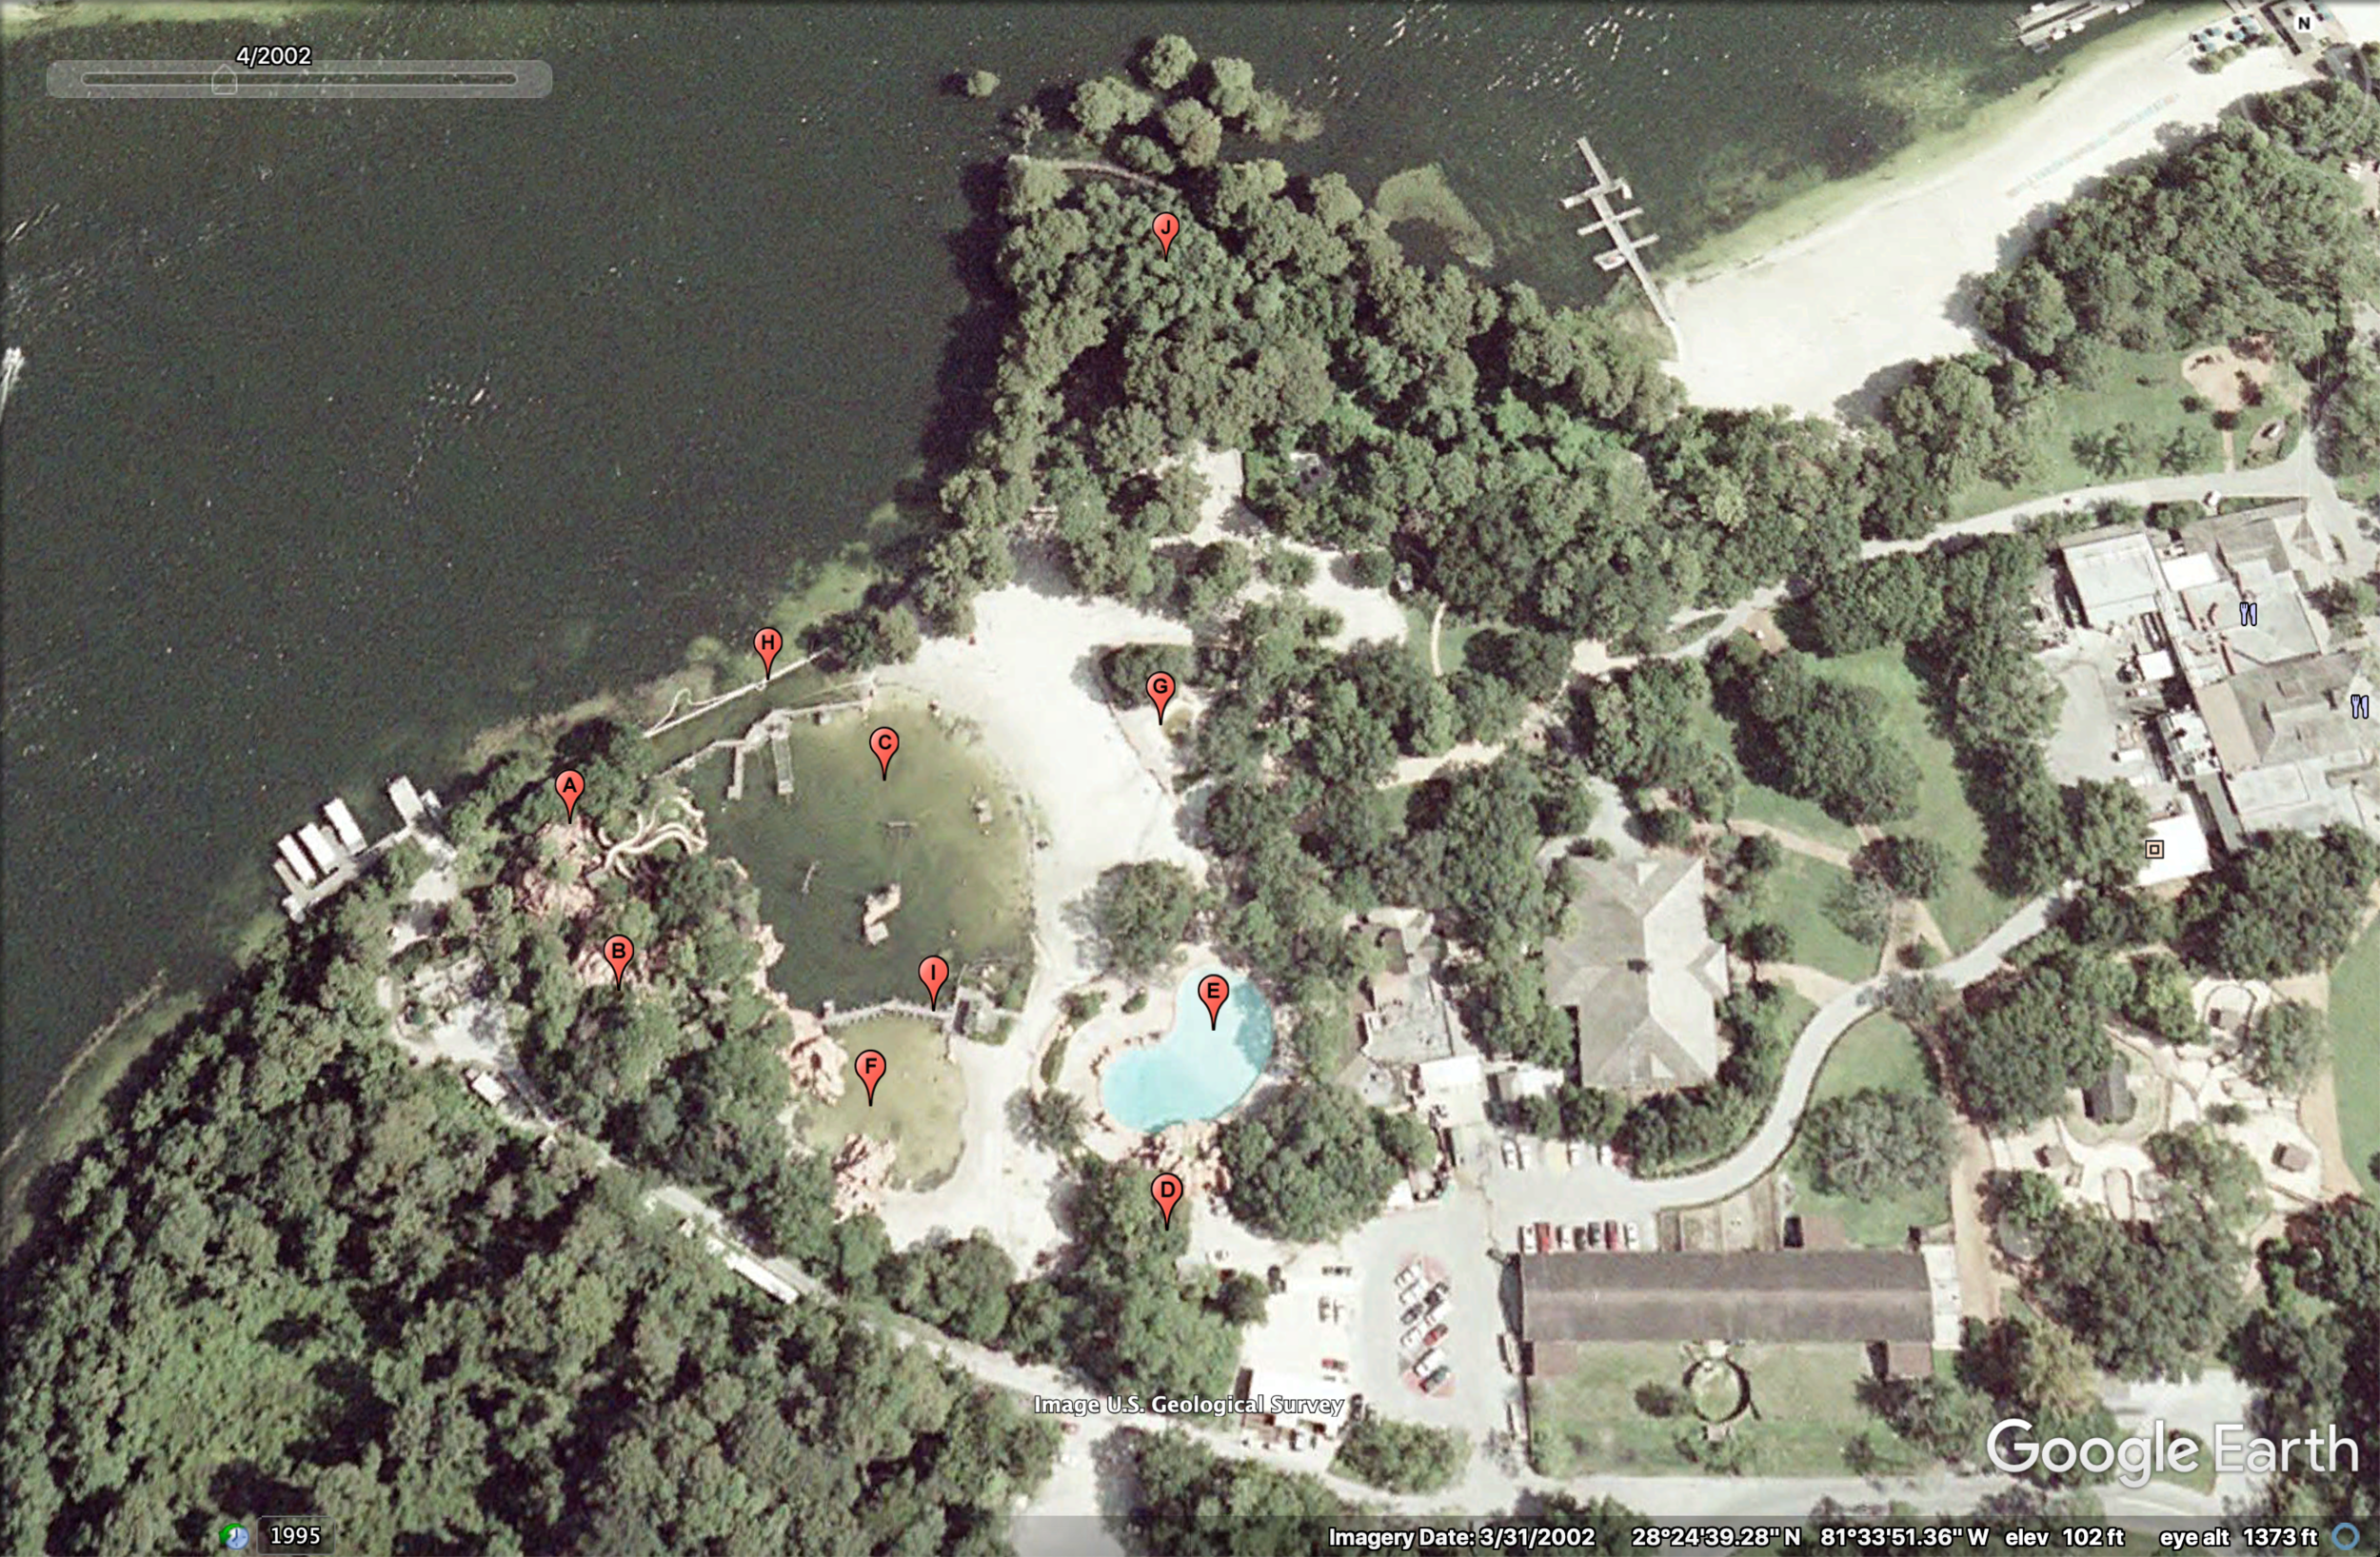 Aerial view of River Country in April 2002 less than a year after its closing. Plants haven't yet begun overrunning the property as they would in the near future. Red pins represent each of the park's attractions. A) Whoop 'n Holler Hollow; B) White Water Rapids; C) Bay Cove Pool; D) Slippery Slide Falls; E) Upspring Plunge; F) Kiddie Kove; G) Indian Springs; H) Bay Bridge; I) Barrel Bridge; J) Cypress Point Nature Trail. (Photo: Google Earth, labeling by me)